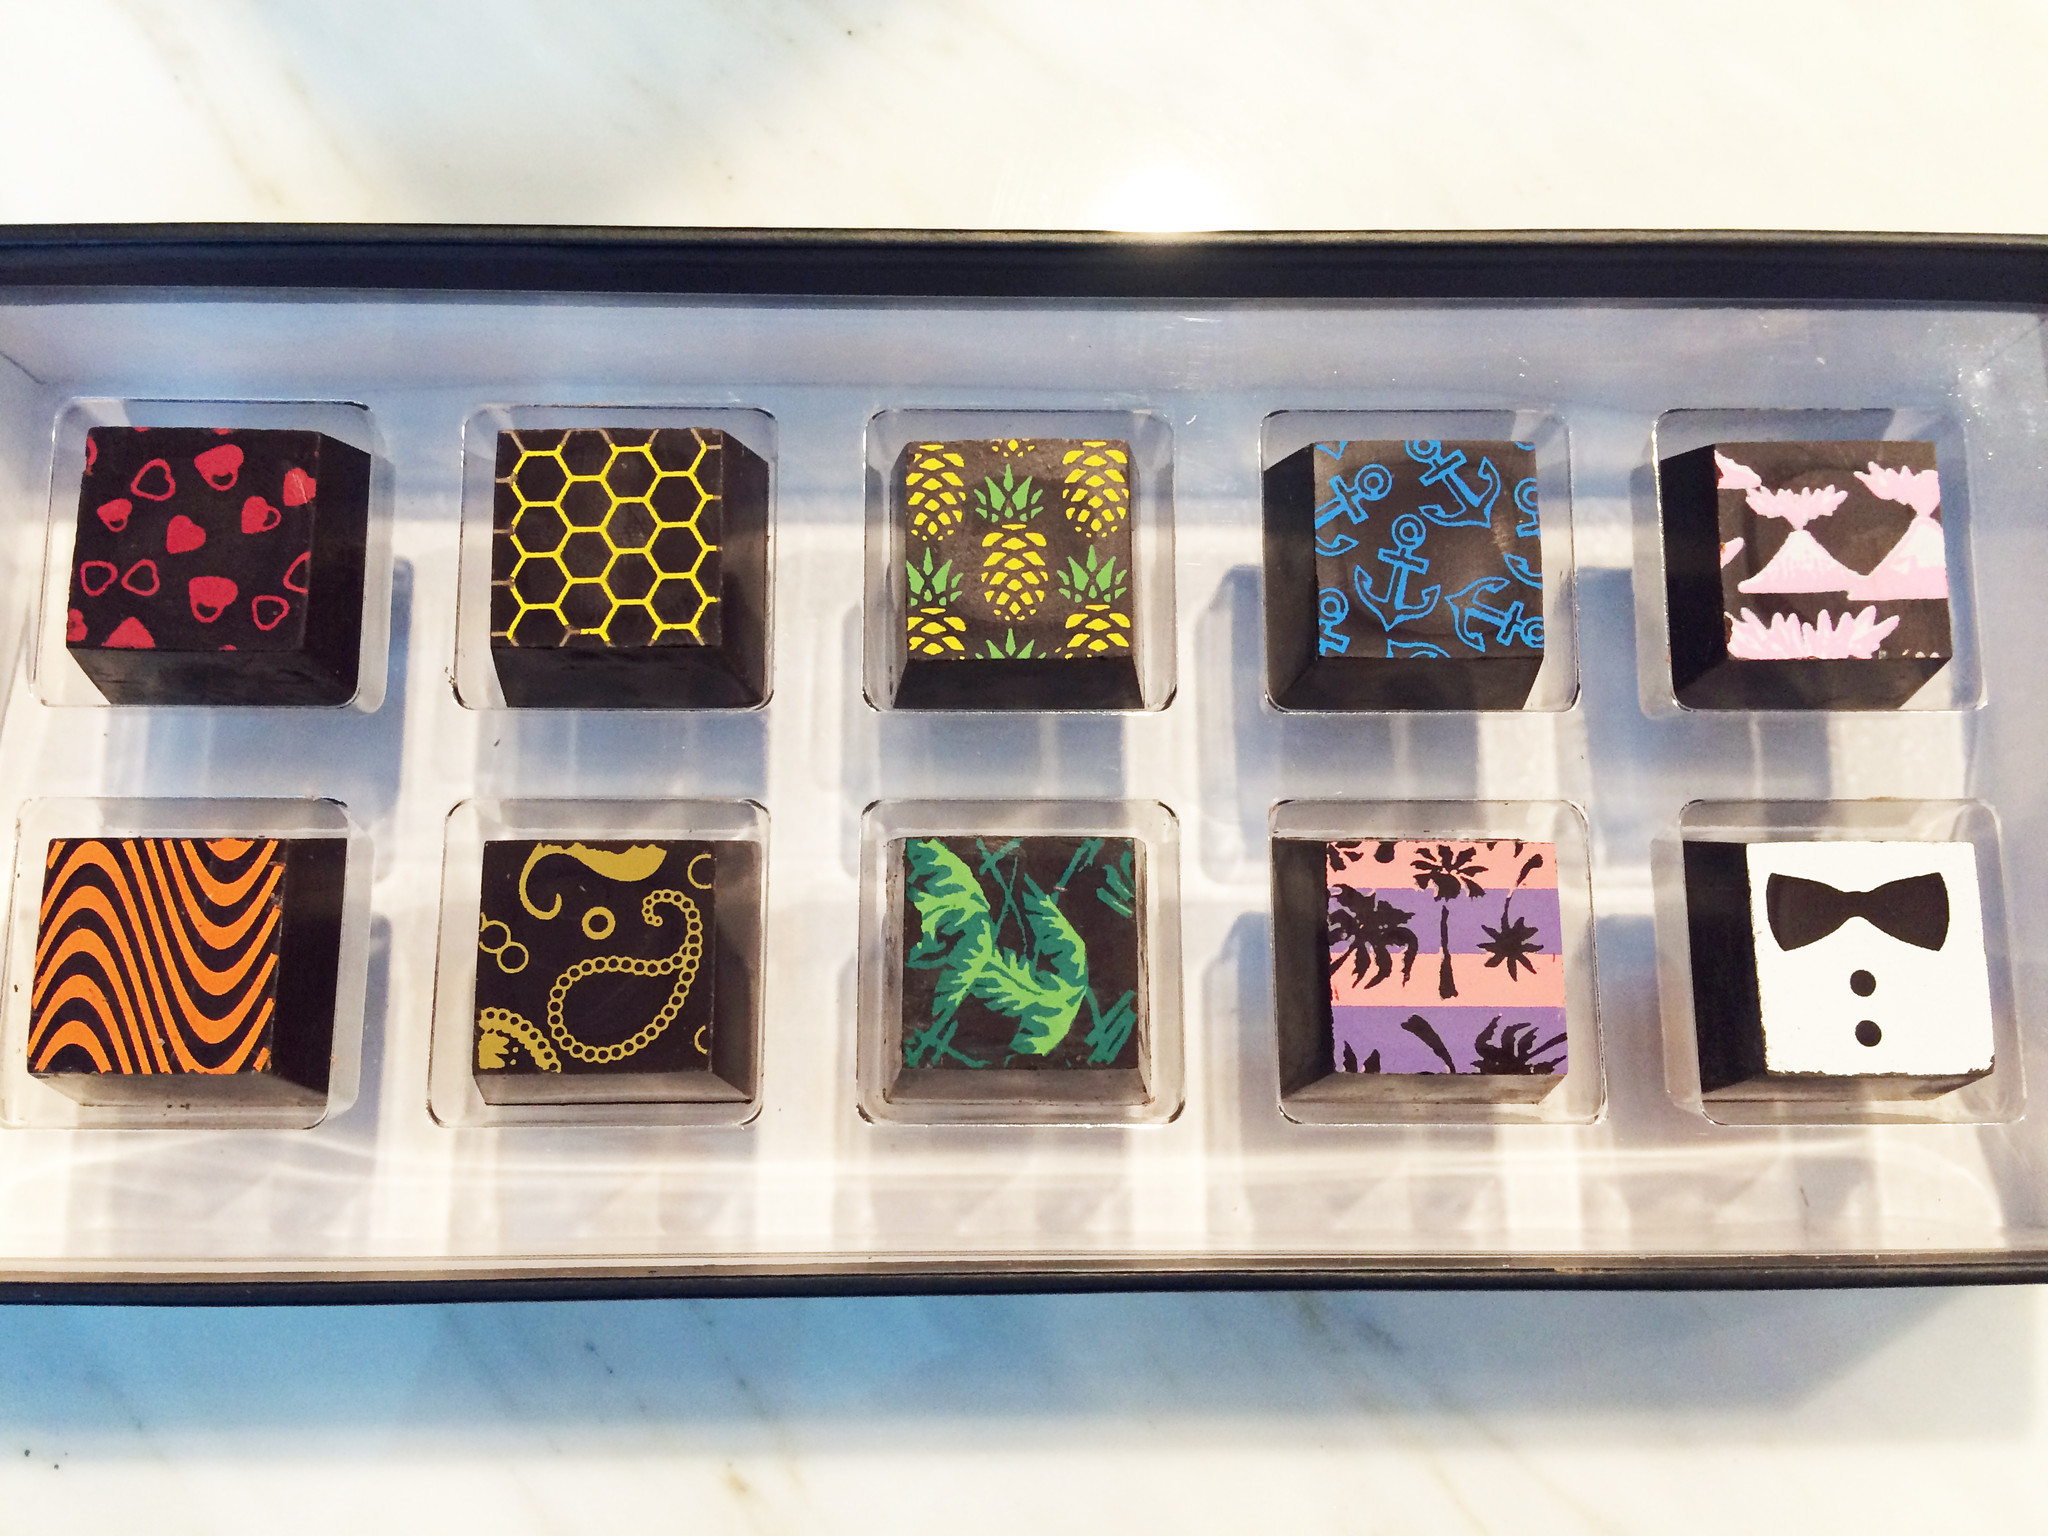 First look: Compartés chocolatier to open on Melrose Place on Sunday